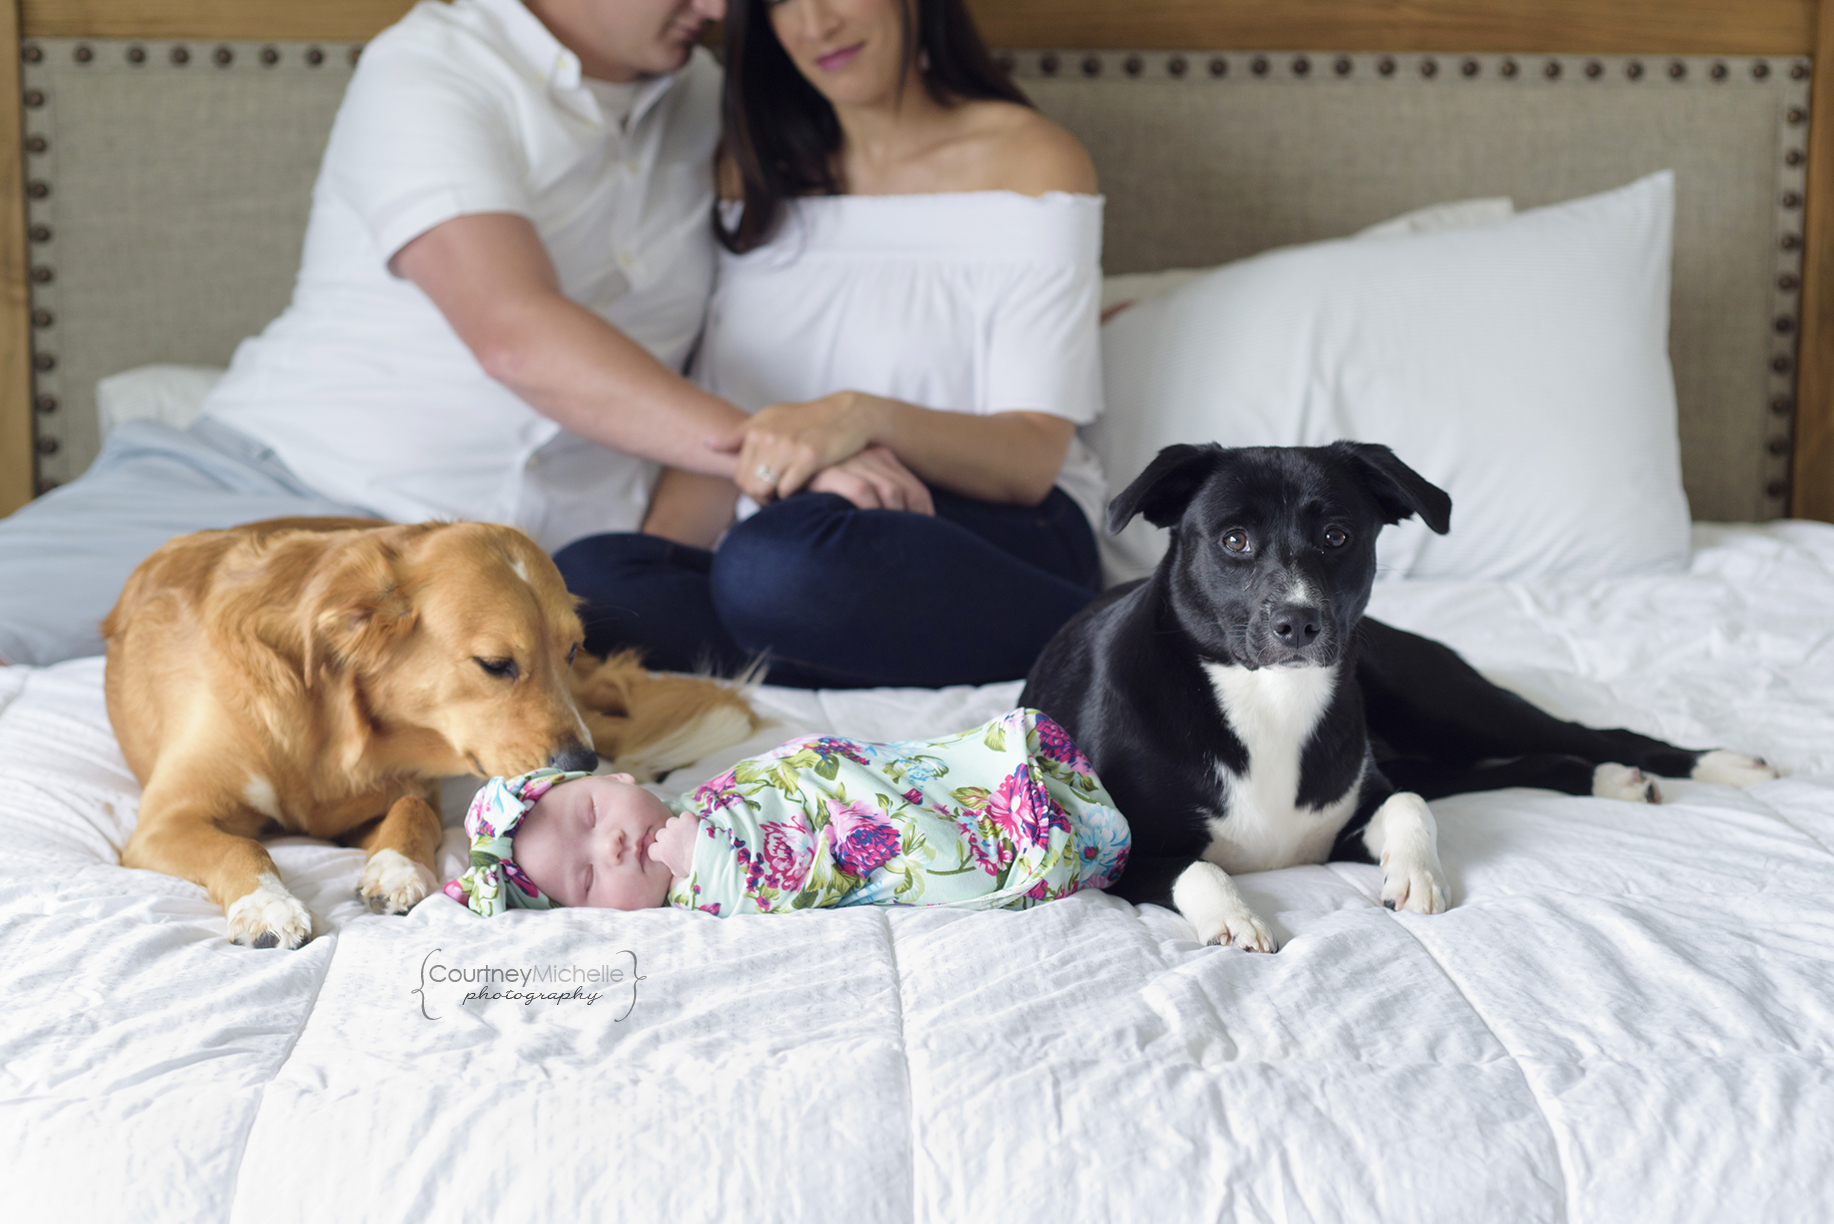 chicago-newborn-photographers-courtney-laper-lifestyle-session-newborn-on-bed-with-dogsCOPYRIGHTCMP-Camille20190705-2673-19.jpg